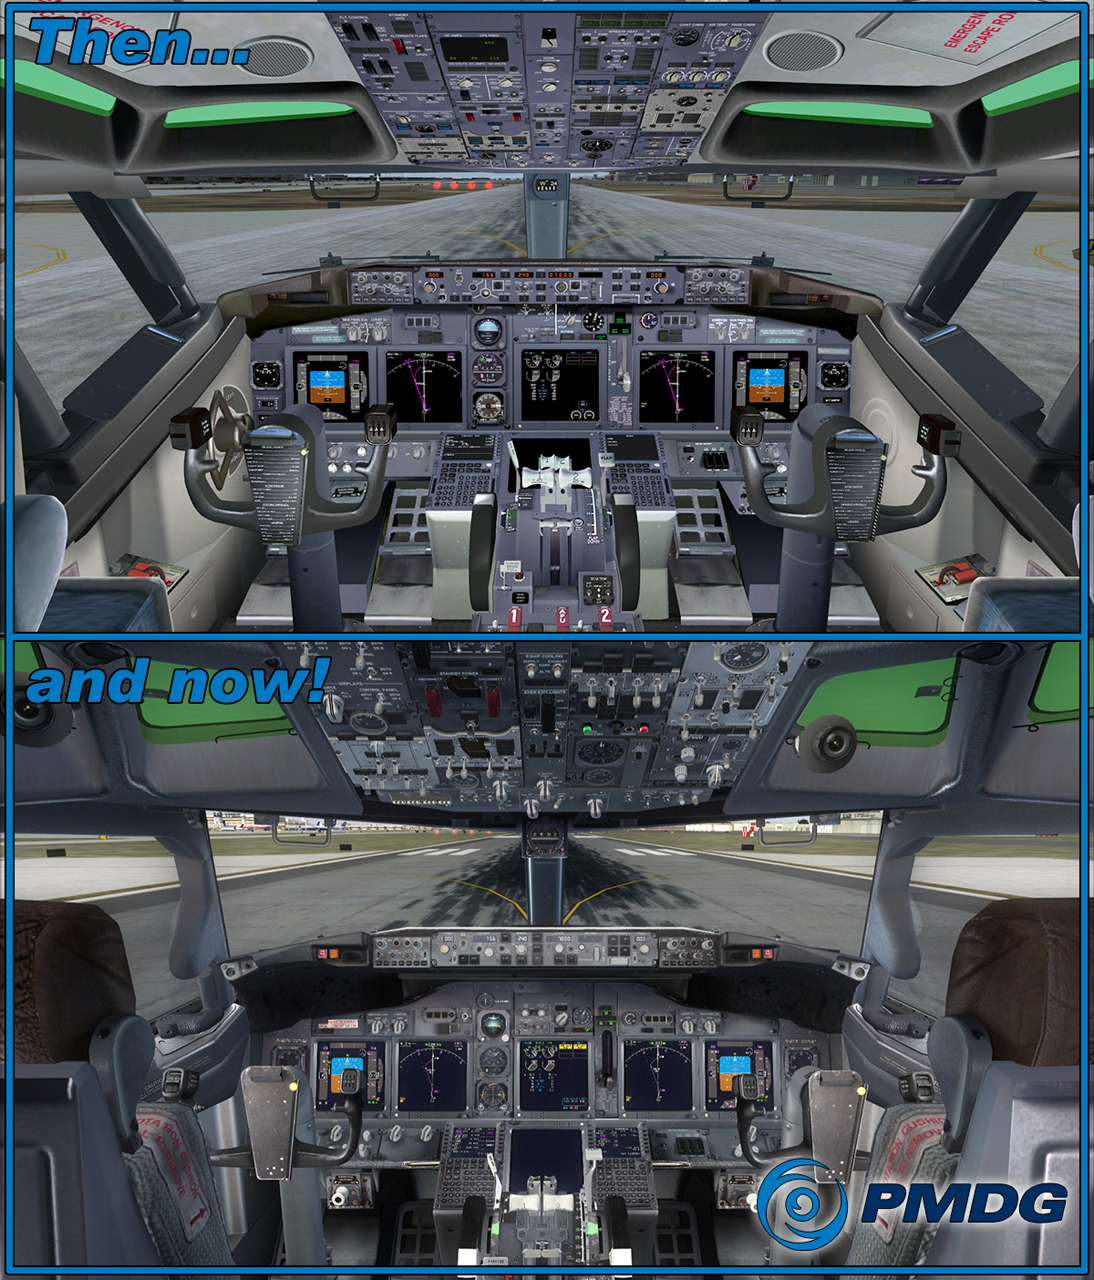 PMDG 737 NGX Comparison Image question?